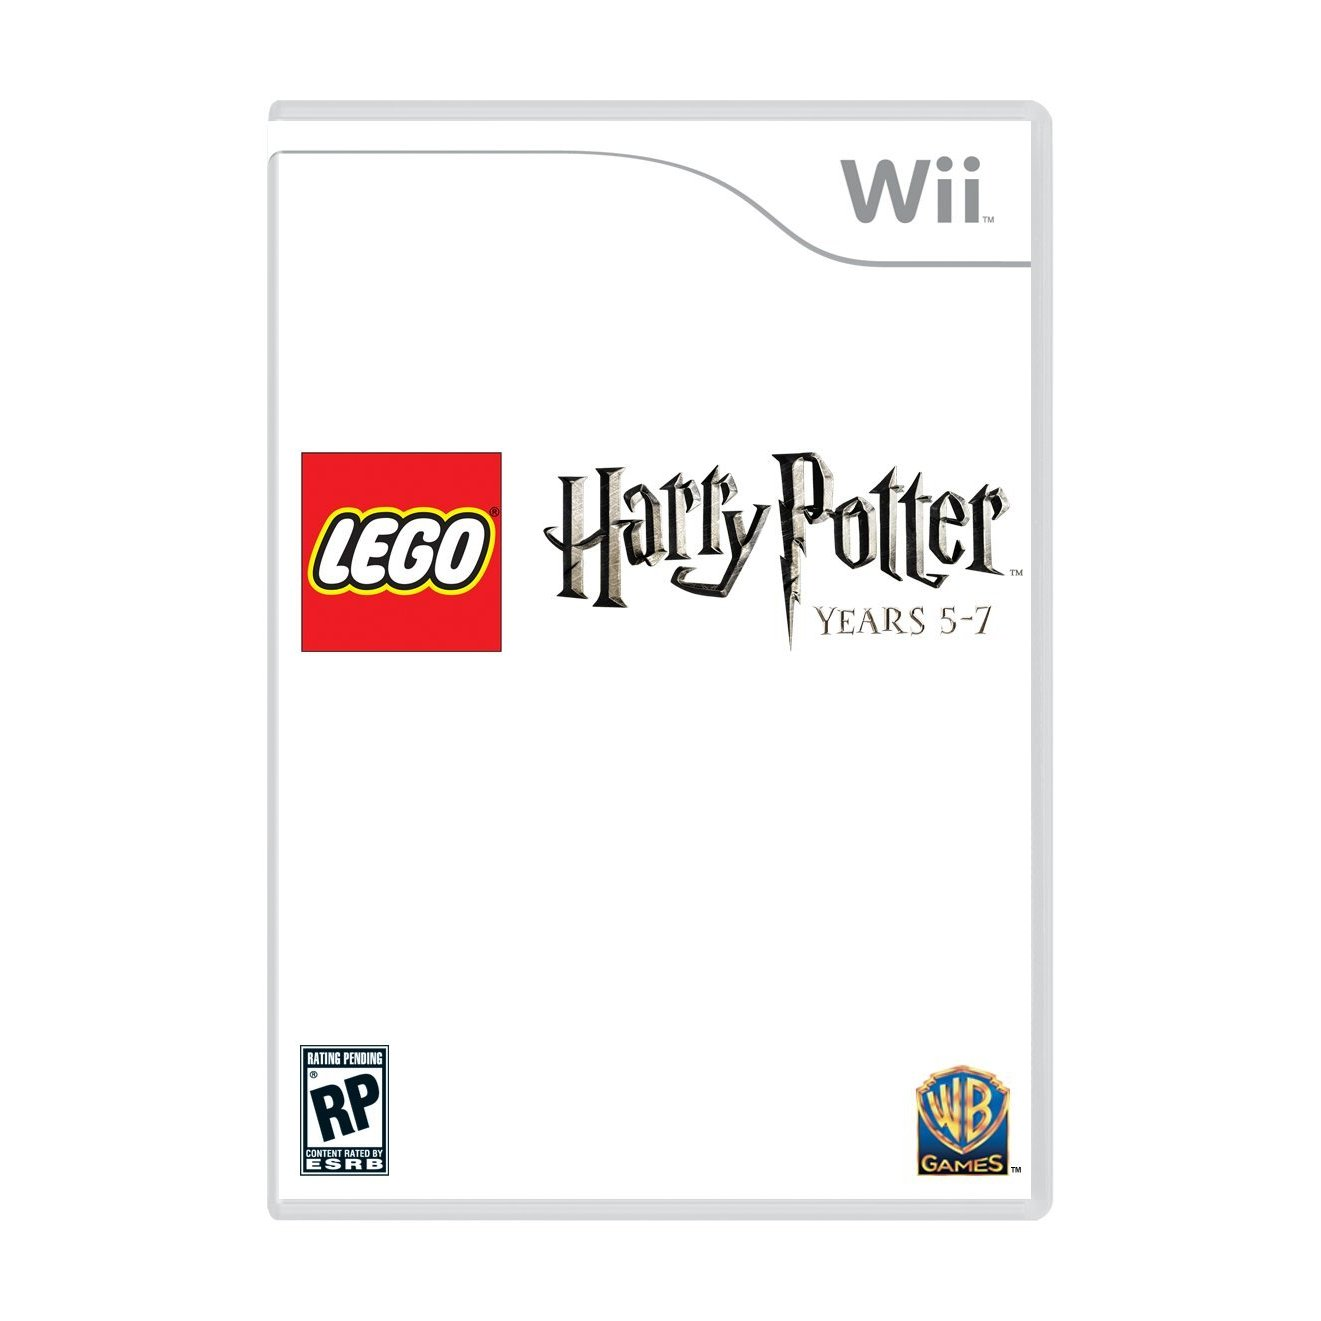 The Order Of The Phoenix News Network Exclusive Lego